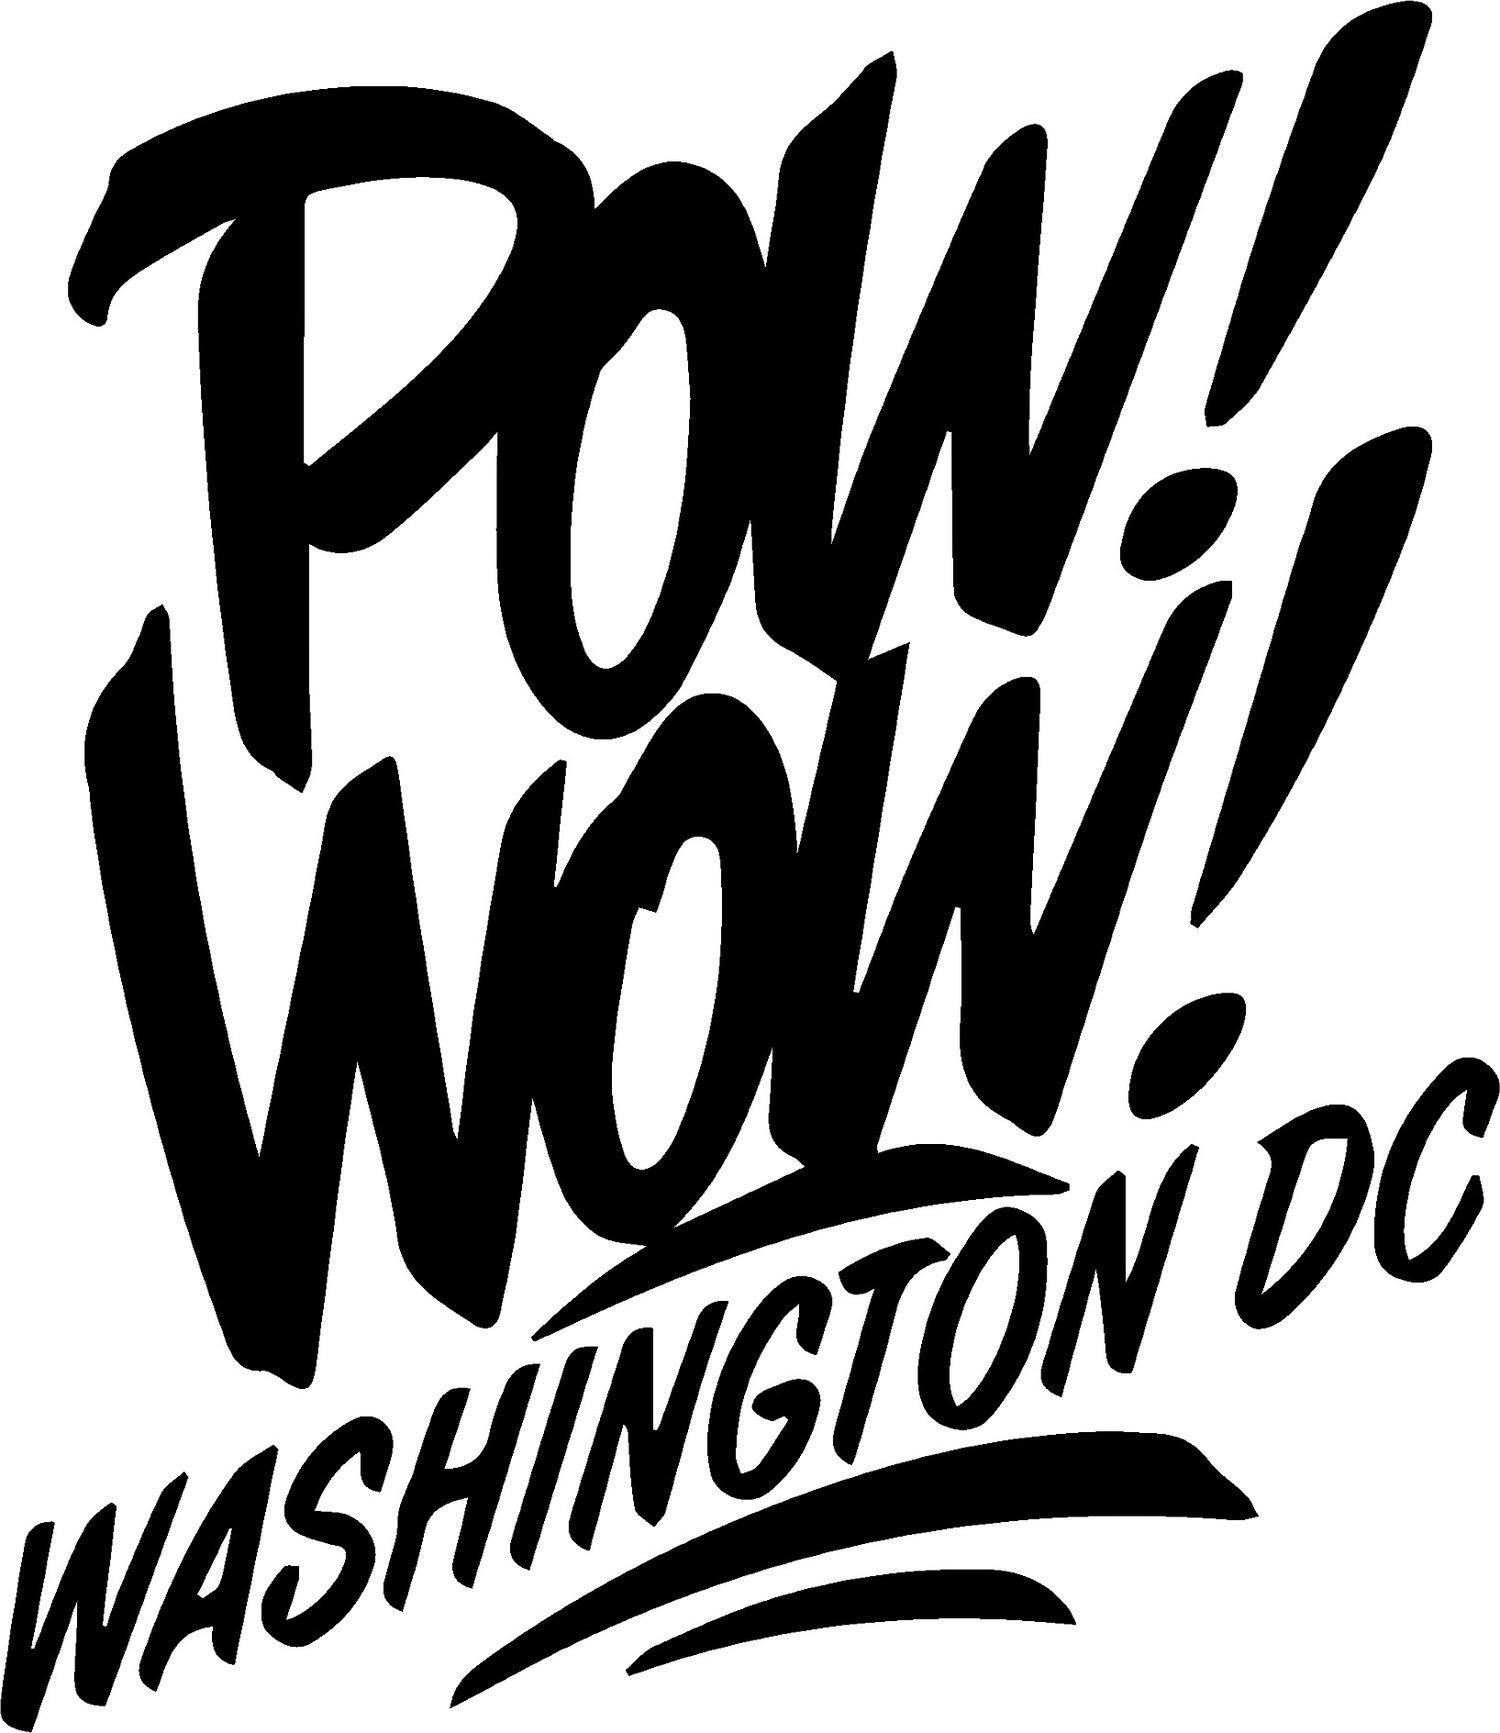 Pow! Wow! Washington DC